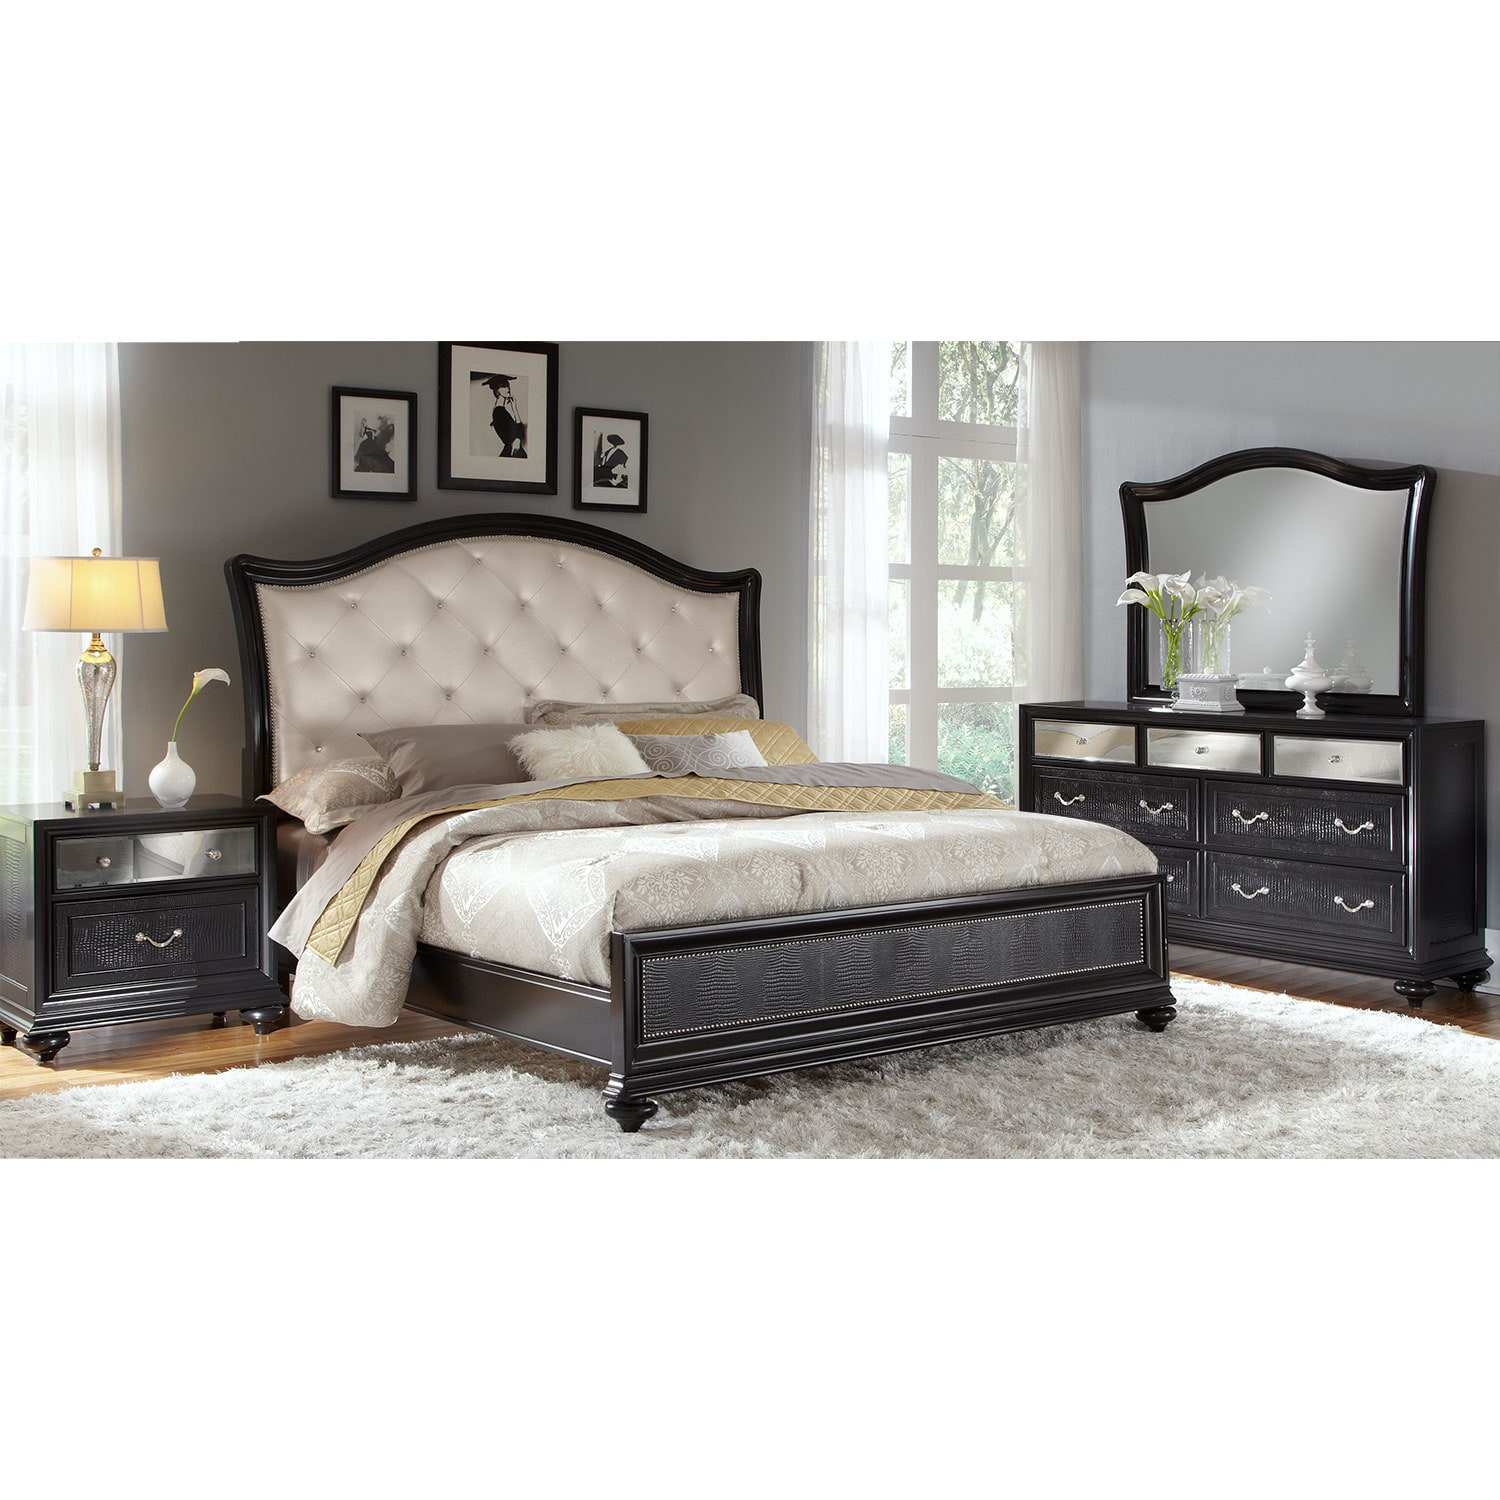 Marilyn 6 piece king bedroom set ebony american for Bedroom 6 piece set